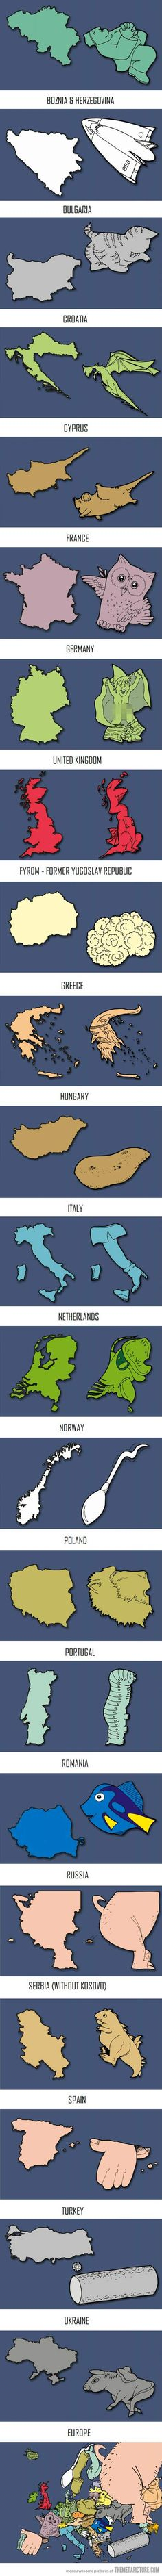 funny-Europe-countries-art  - love this, great way for visual learners to learn countries....